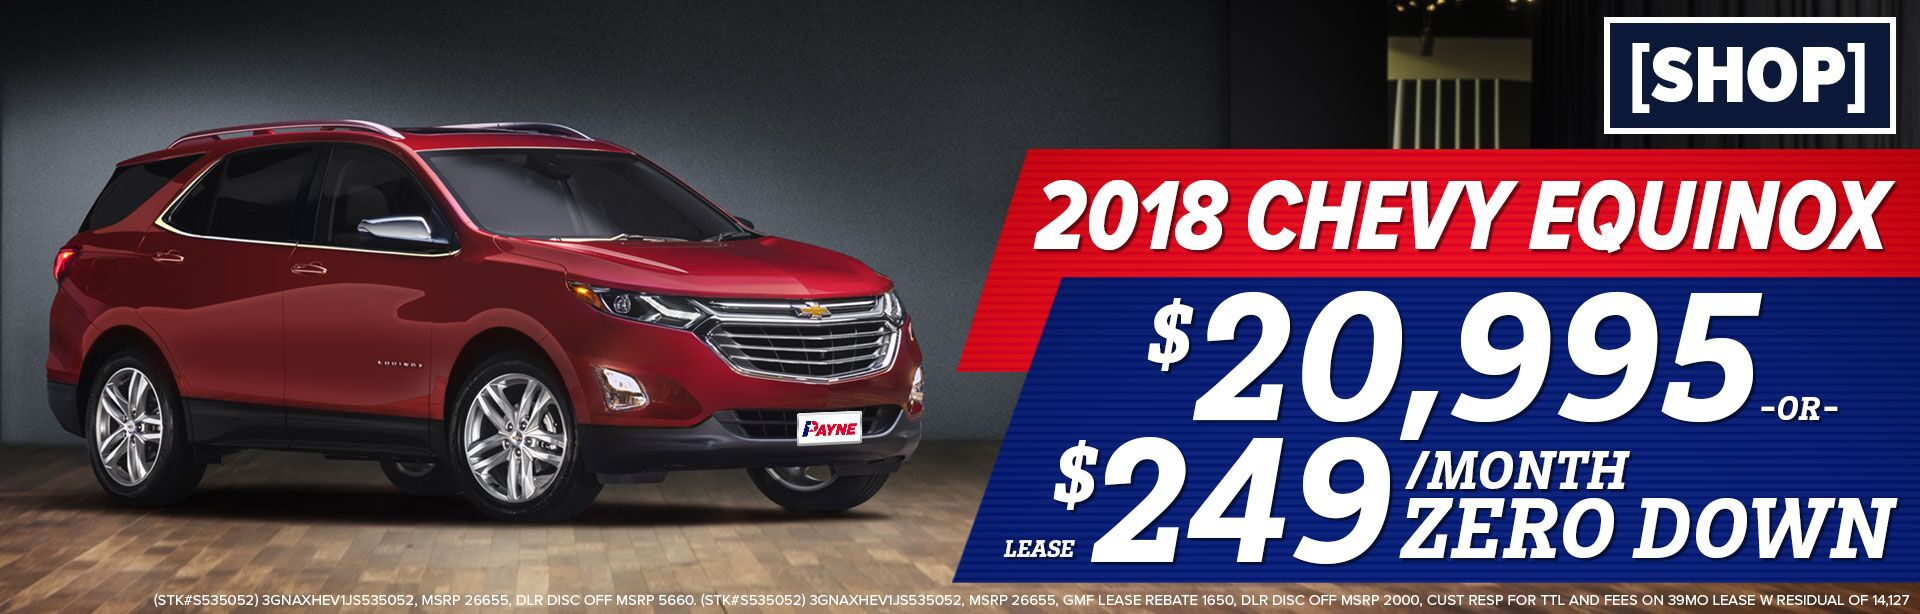 Chevy Equinox April 2018